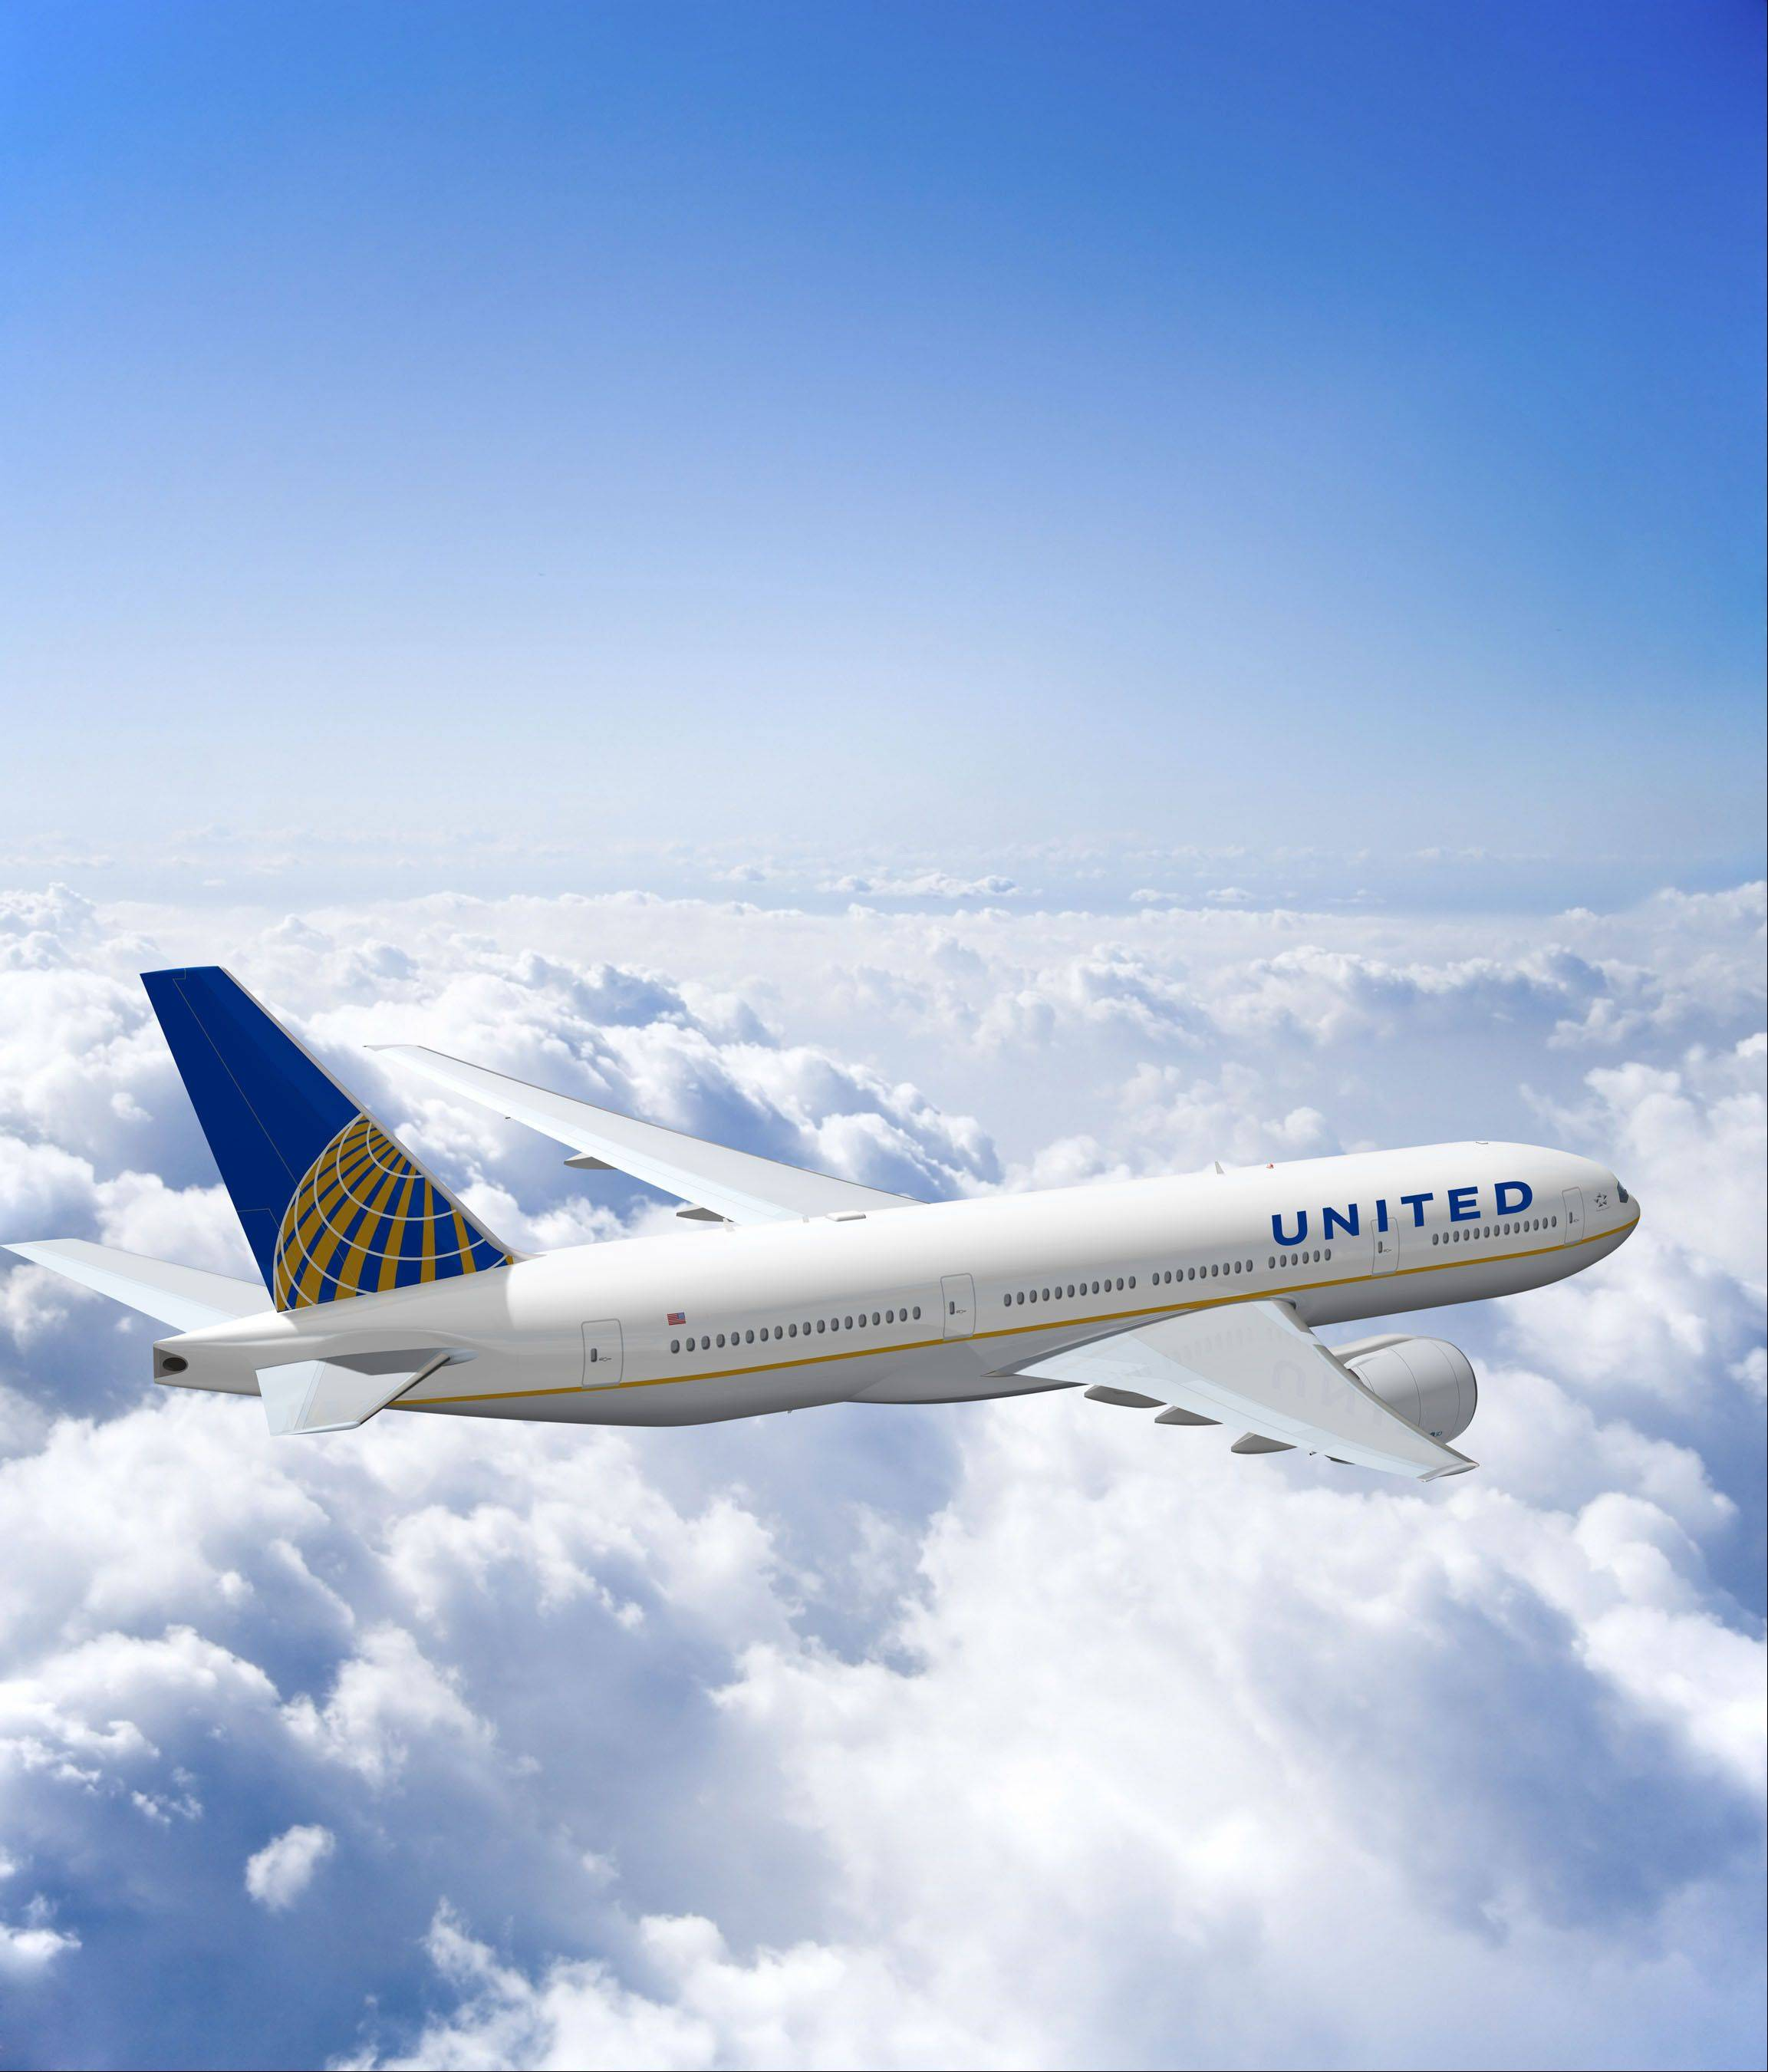 It was a rough third quarter for United Airlines. Travelers stayed away, frustrated by technology glitches from its merger with Continental. And a huge accounting charge wiped out most of its profit.